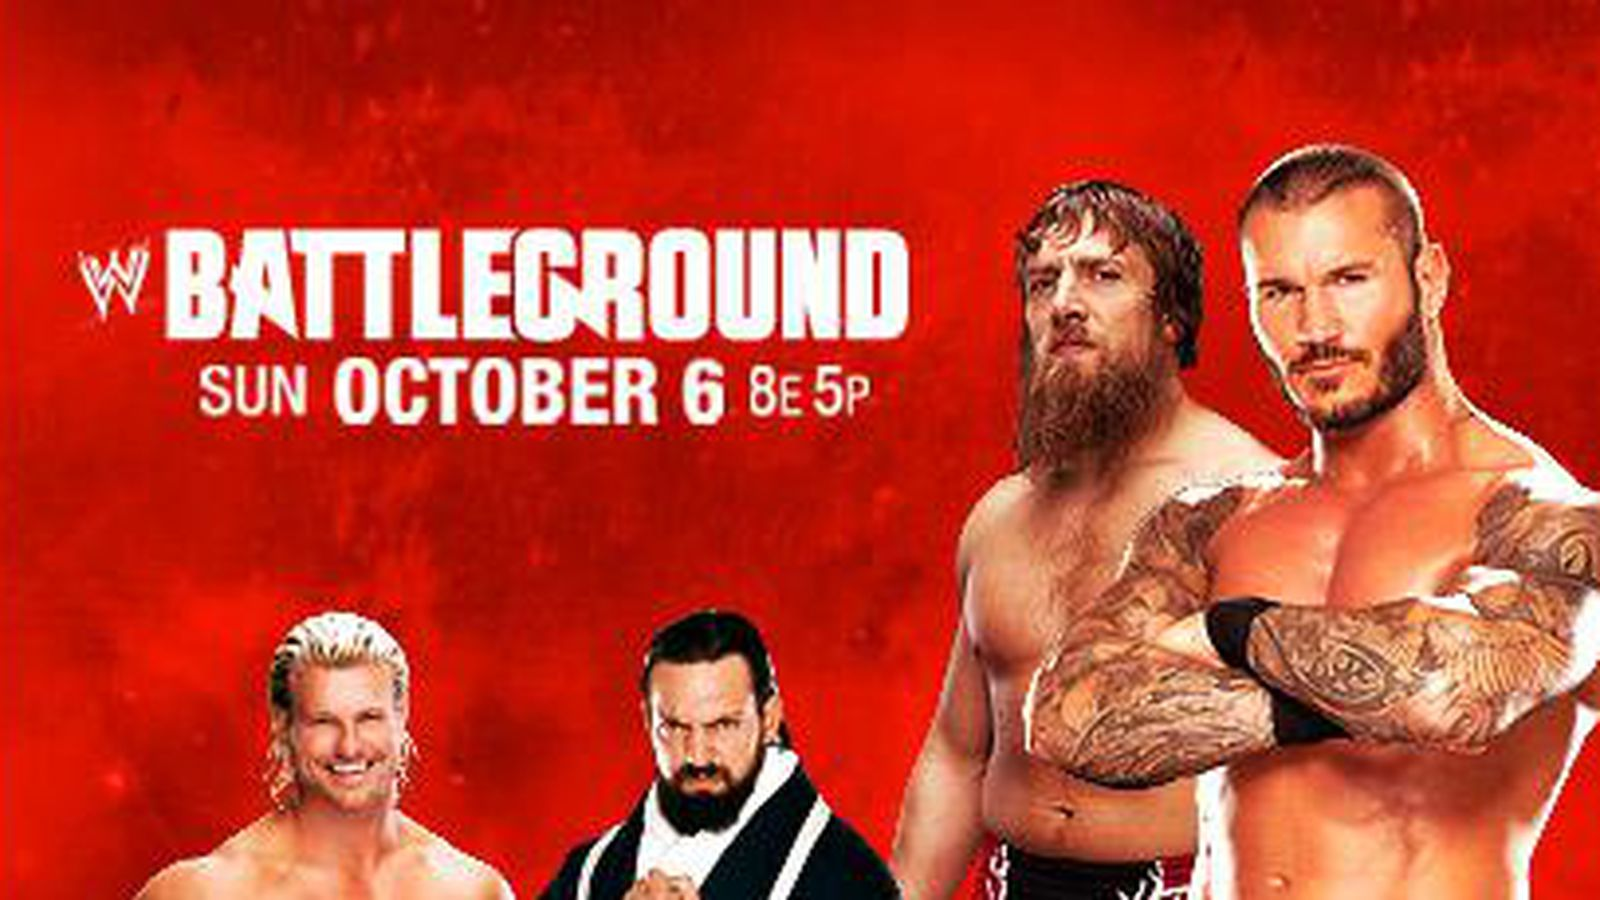 wwe battleground match card previews featuring randy